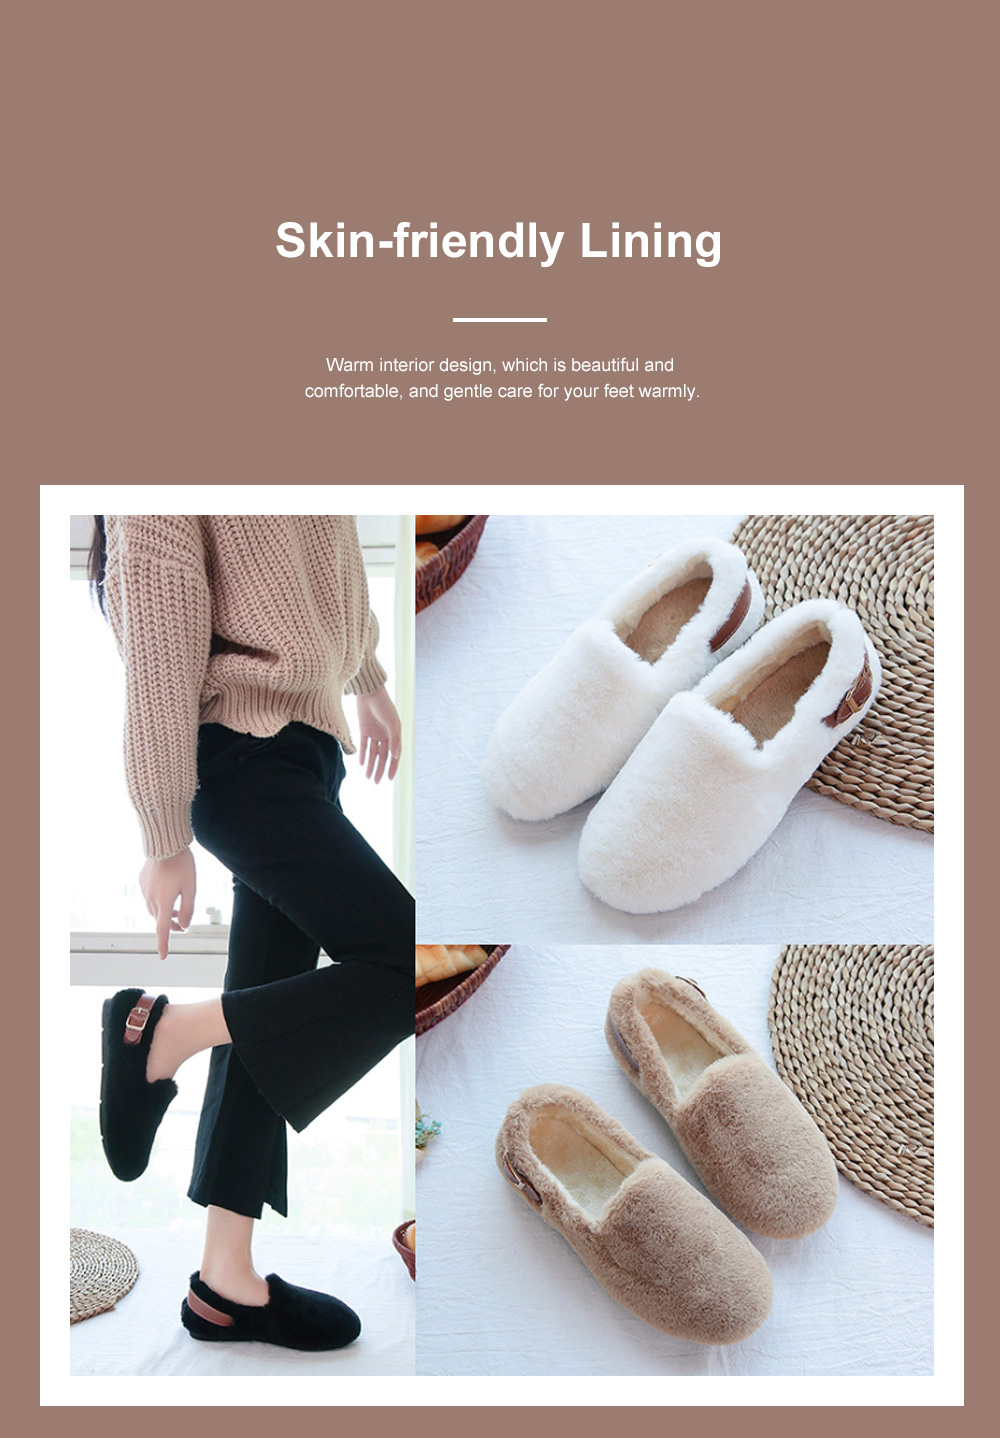 Fuzzy Plush Flats for Women Warm Ankle Boots with Anti-Skid Rubber Sole and Skin-friendly Lining in Winter 2